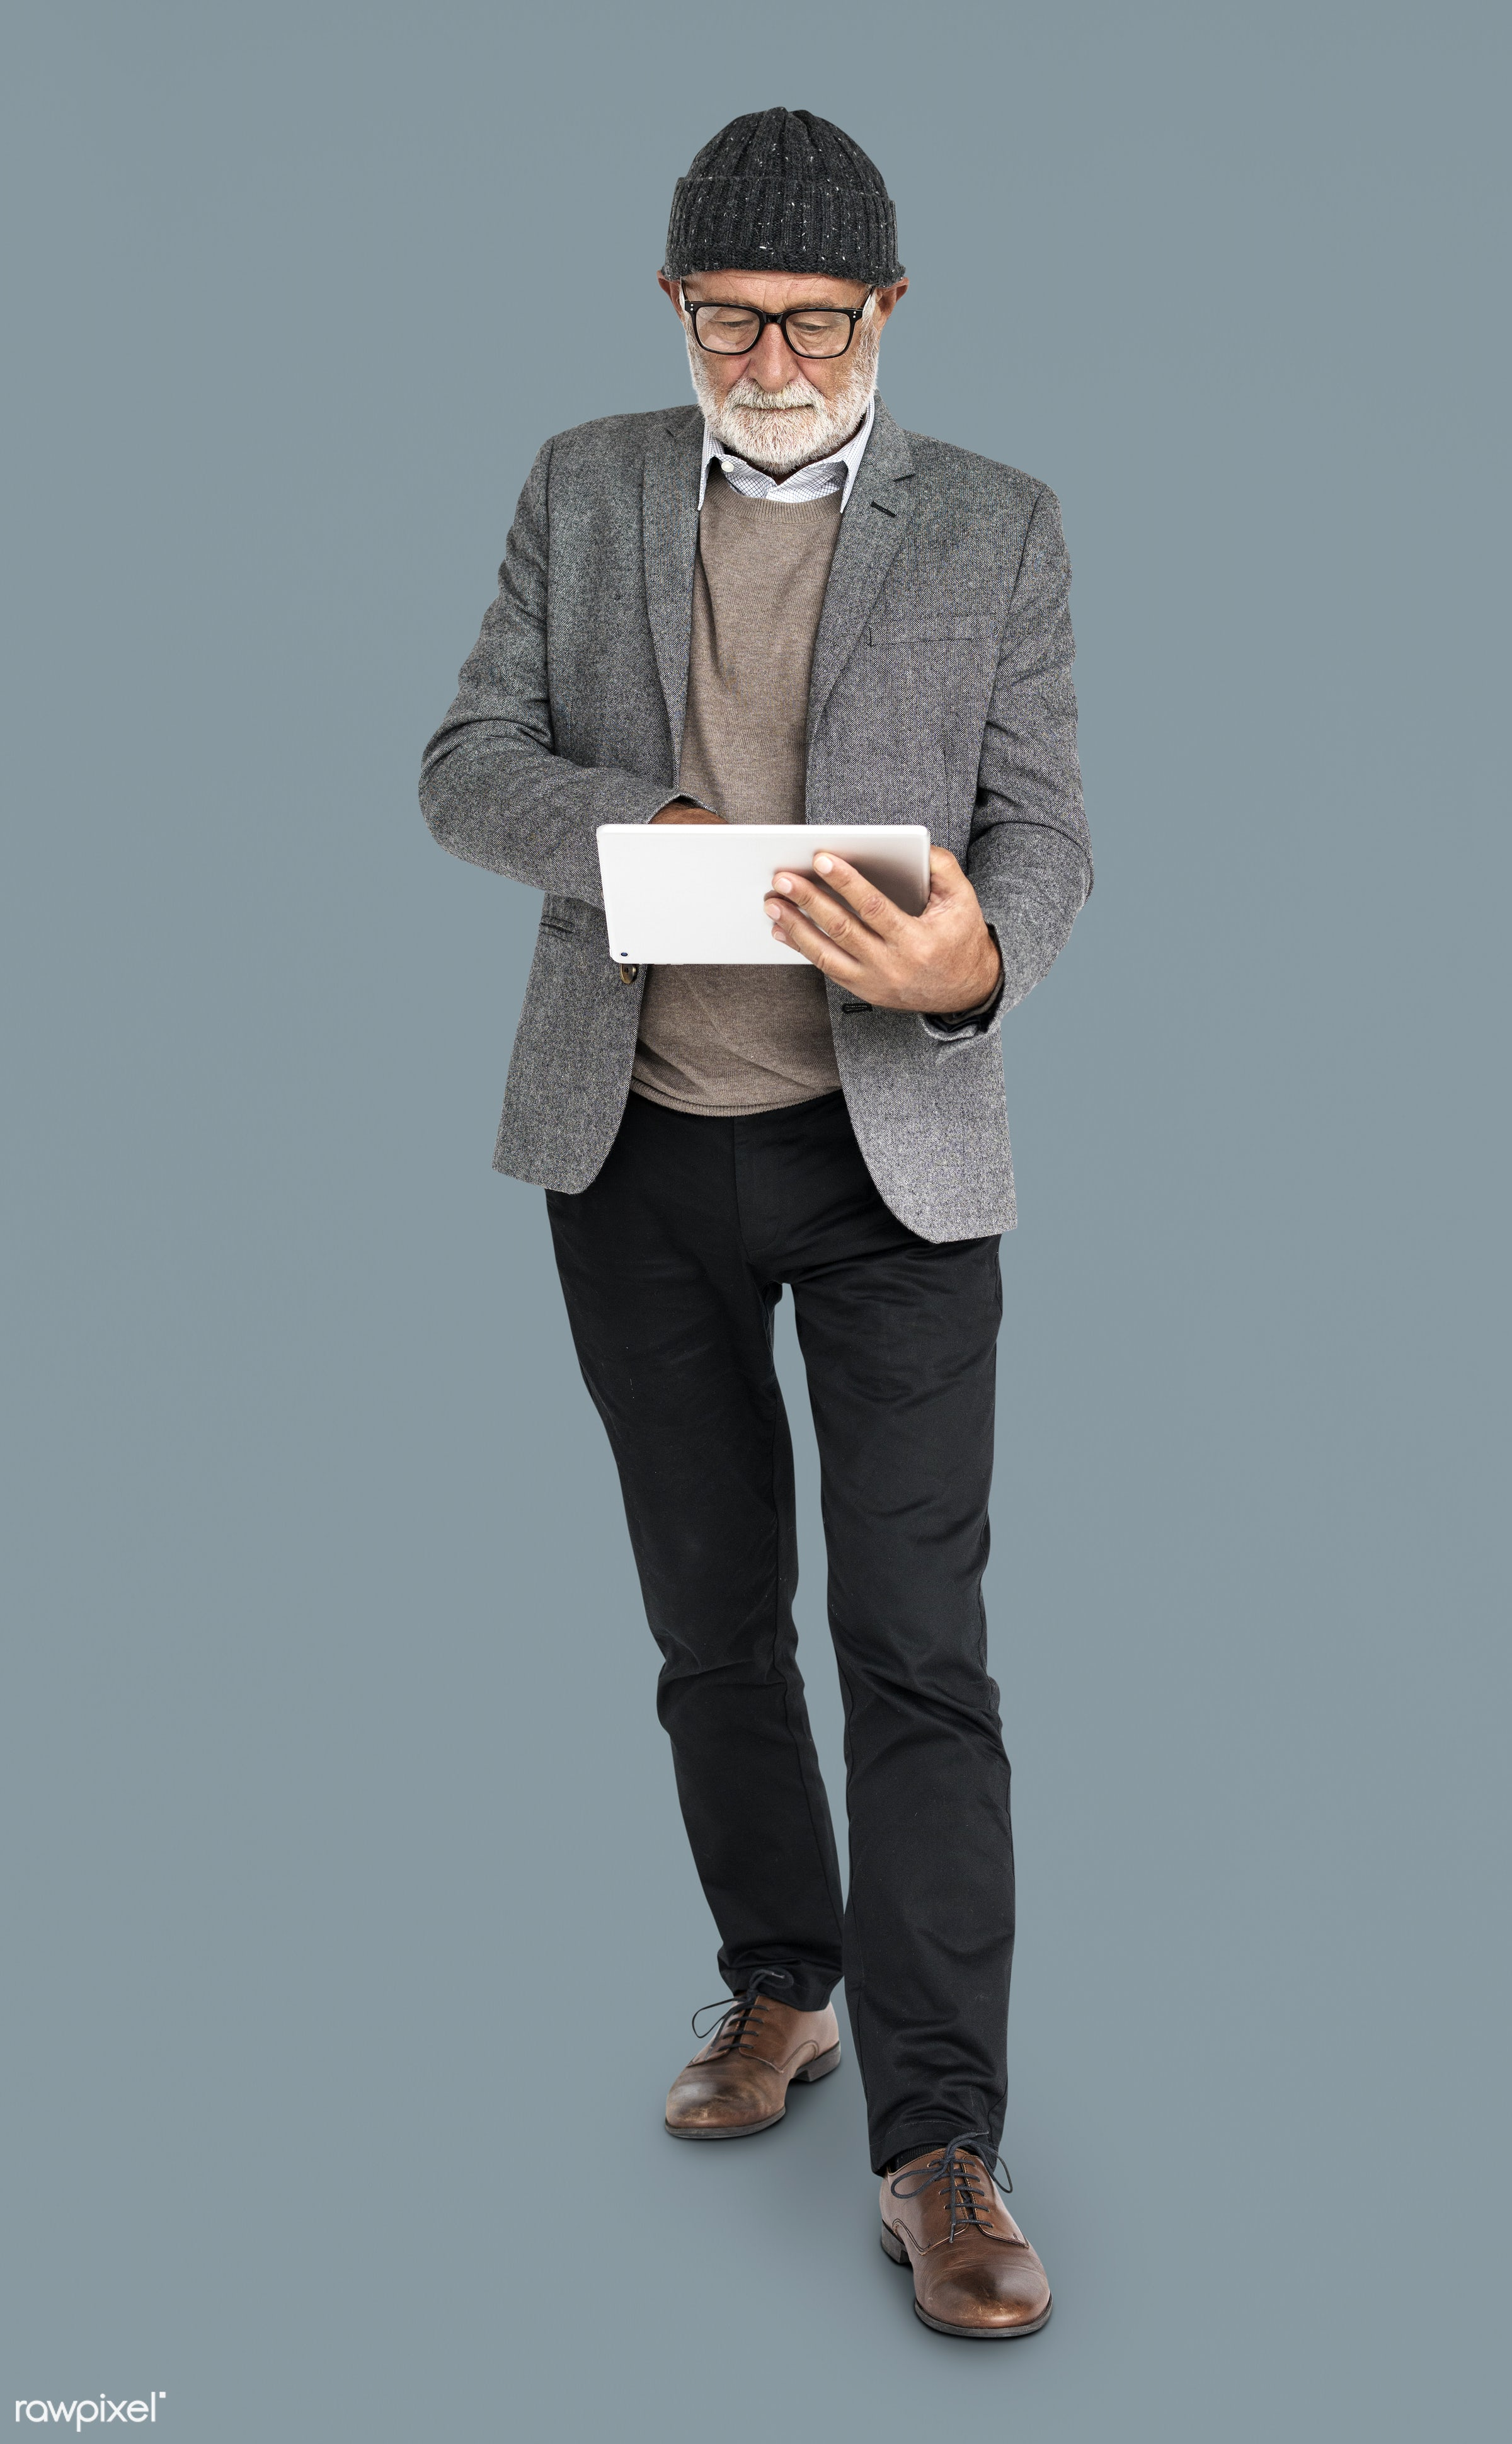 expression, studio, person, technology, glasses, beanie, people, online, digital tablet, casual, grey, man, isolated,...